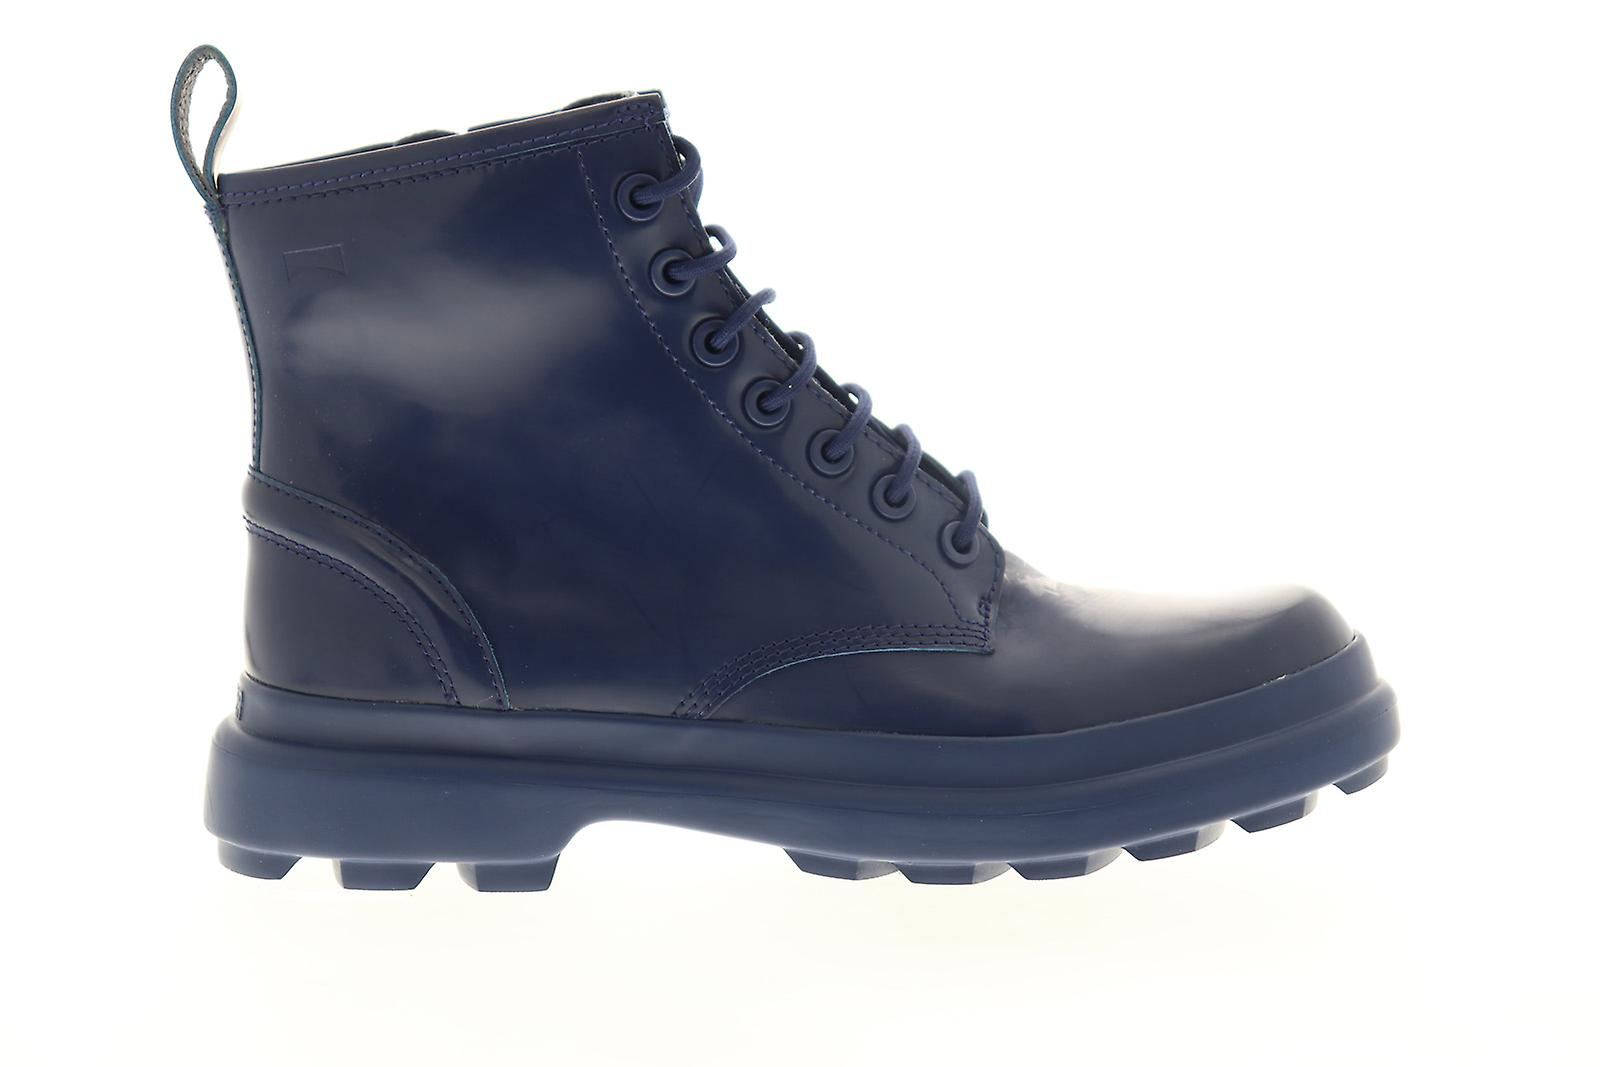 Camper Turtle Womens Blauw Leer Lace Up Casual Dress Boots wxJb5s